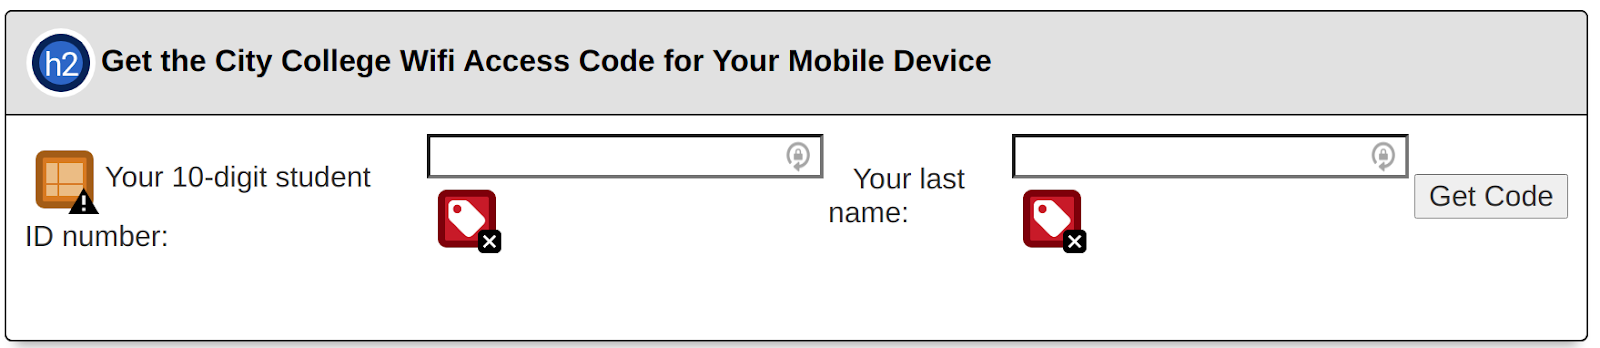 Form to get Wifi access with WAVE errors for missing form labels